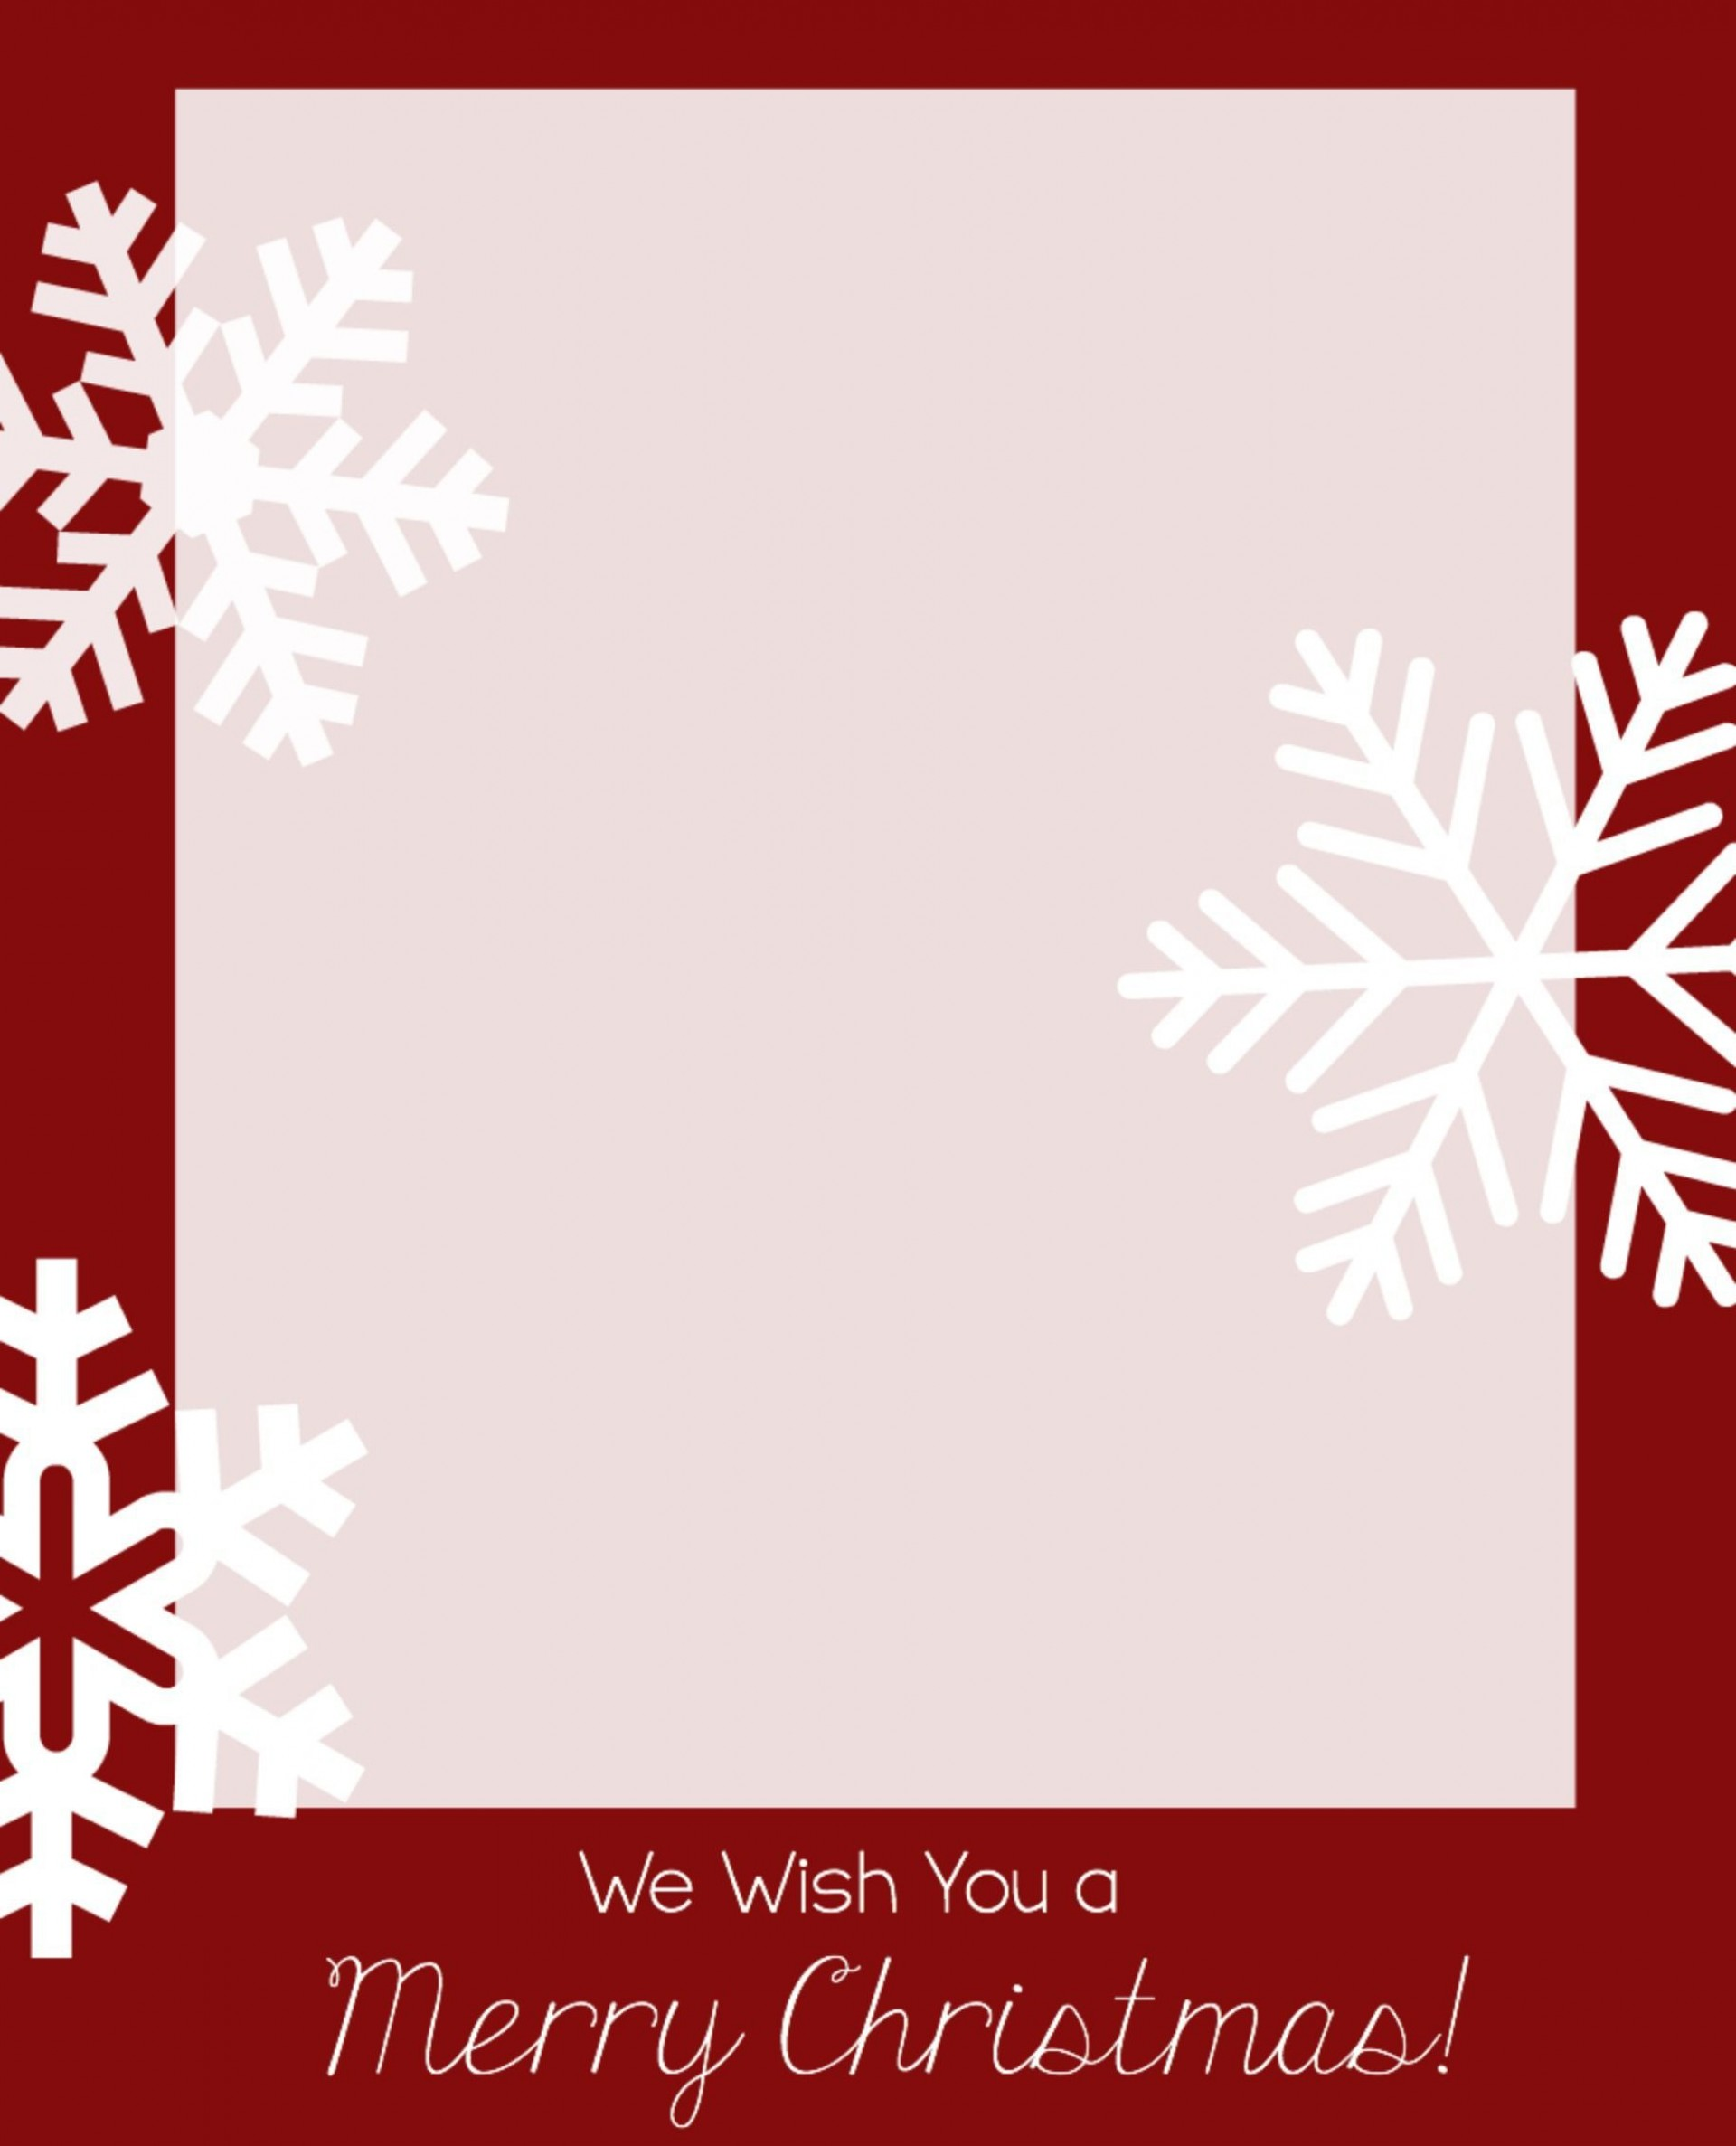 005 Simple Christma Card Template Free Download Photo  Downloads Photoshop Editable1920